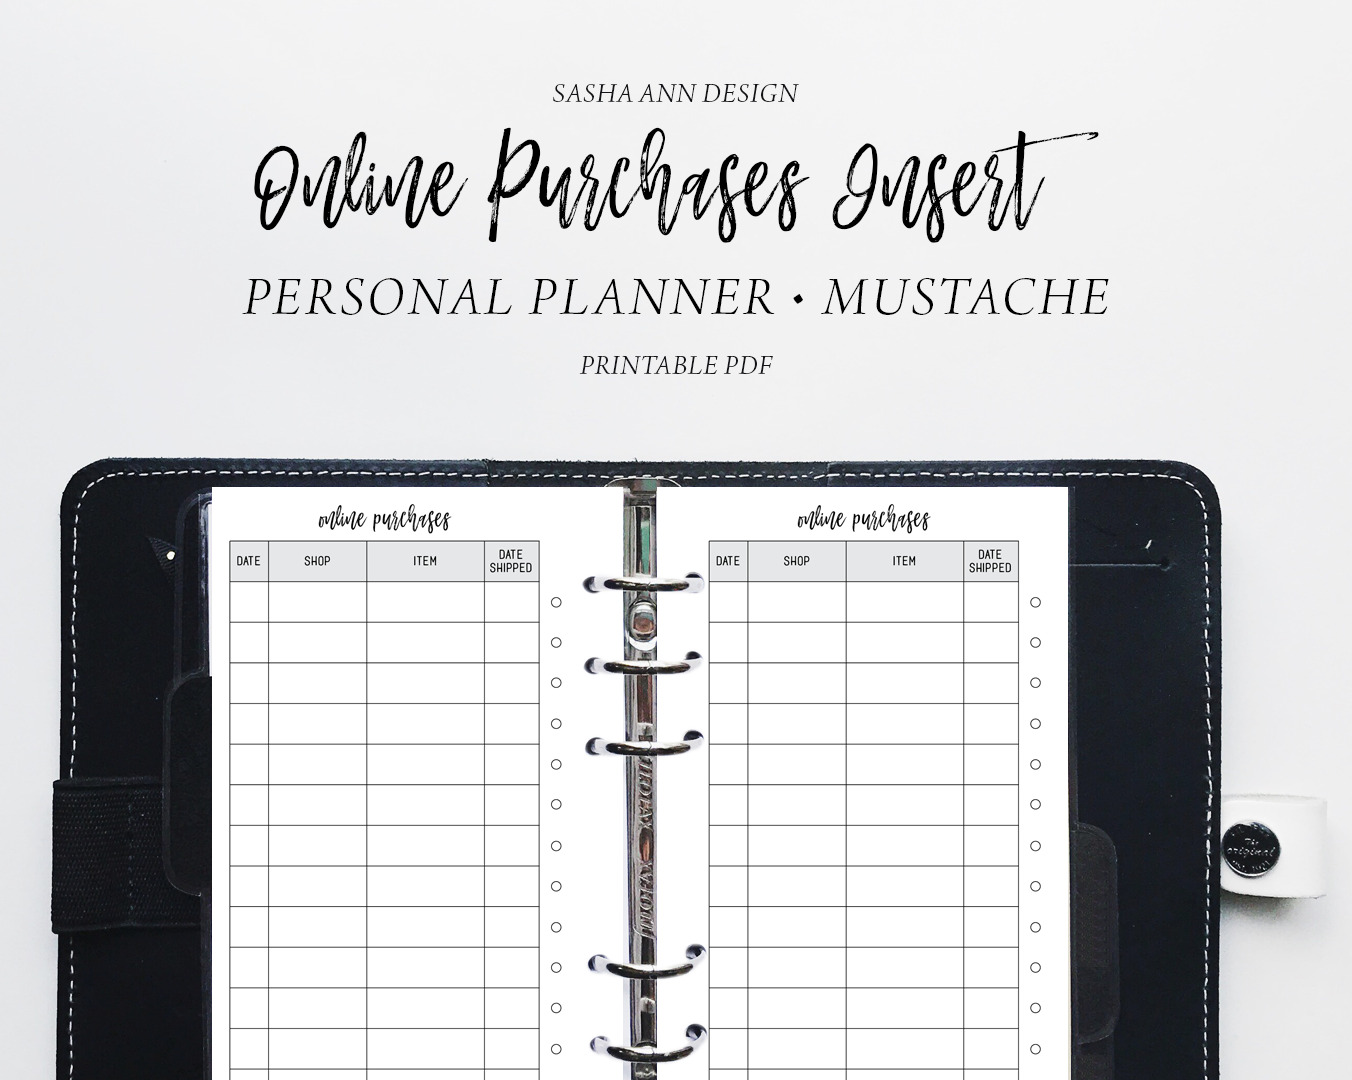 personal planner online purchases planner printable